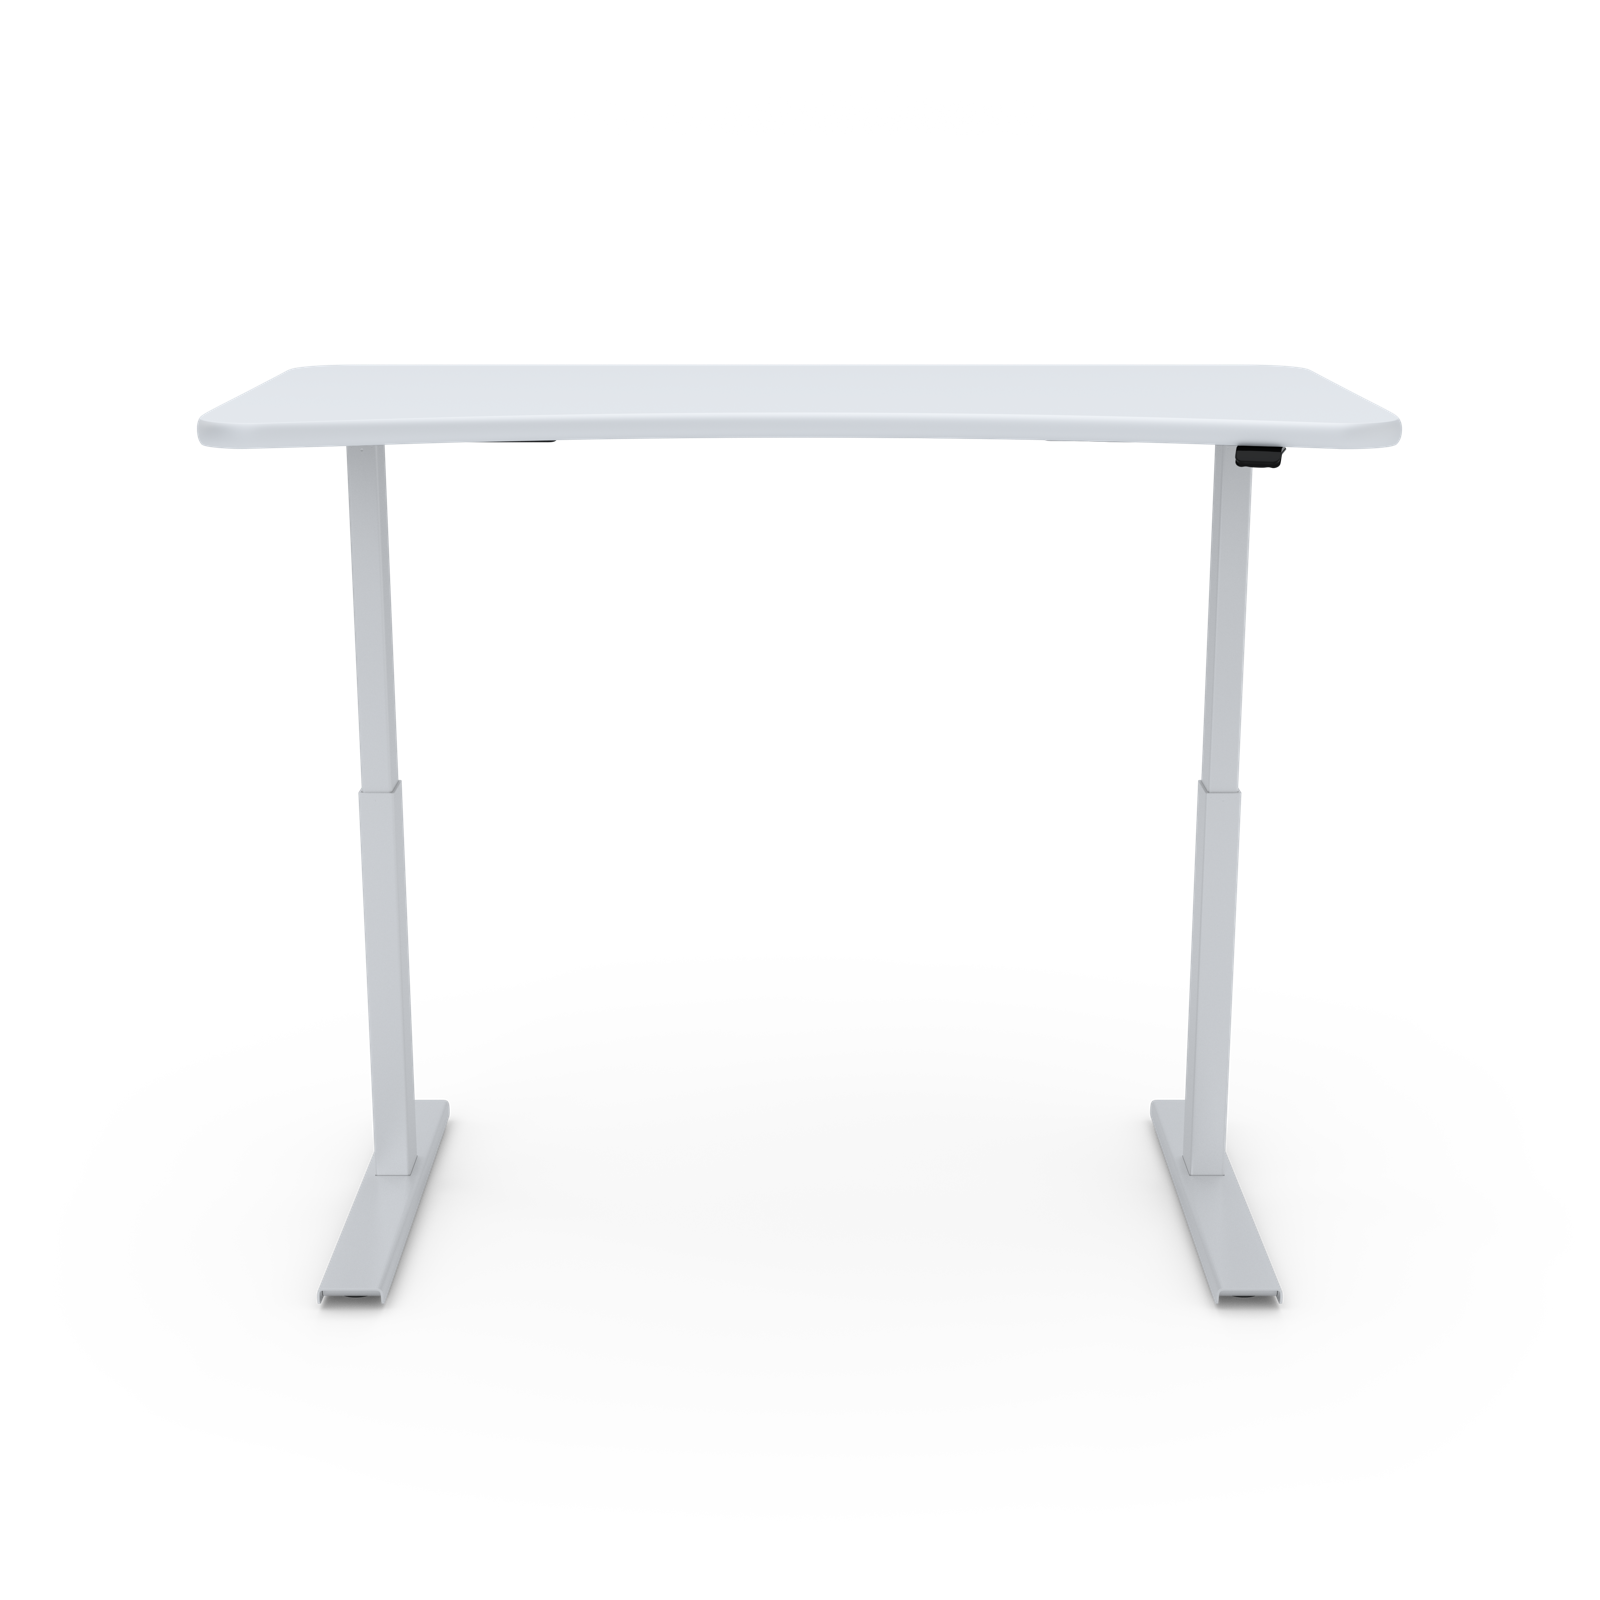 Sit Stand Height Adjustable Standing Desks And Accessories